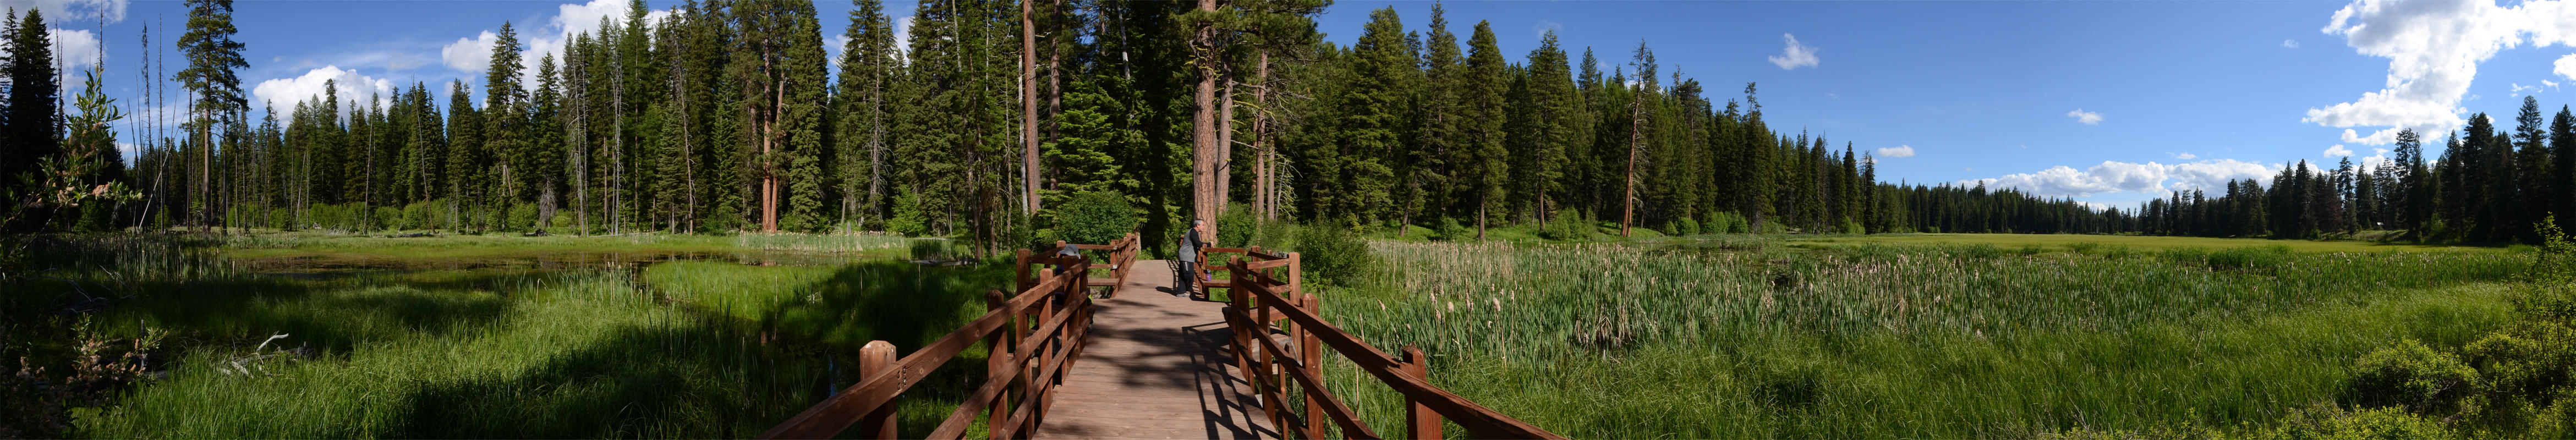 Lily Marsh Trail by eRality